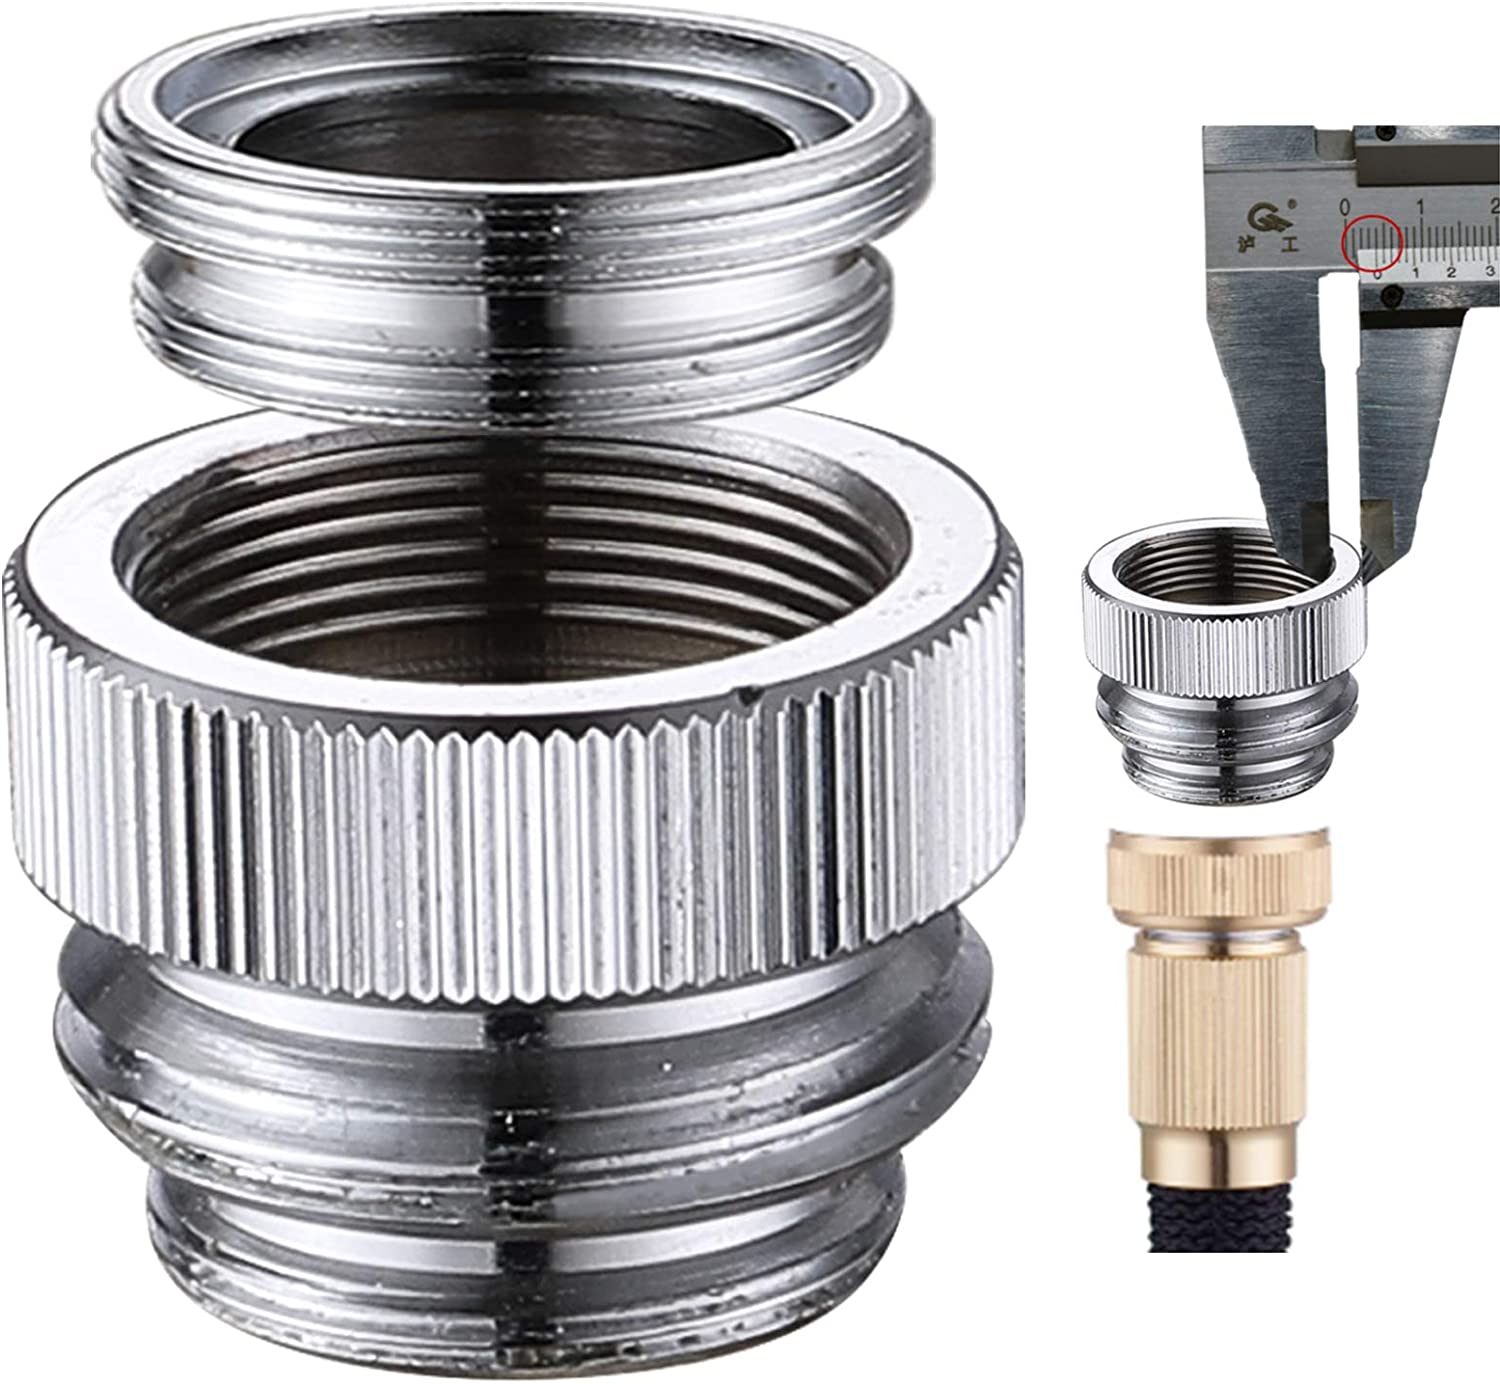 Faucet Adapter Connects Garden Hose or Other 3/4'' Thread Hose, Brass Kitchen Sink Aerator Quick to Connect (Chrome)